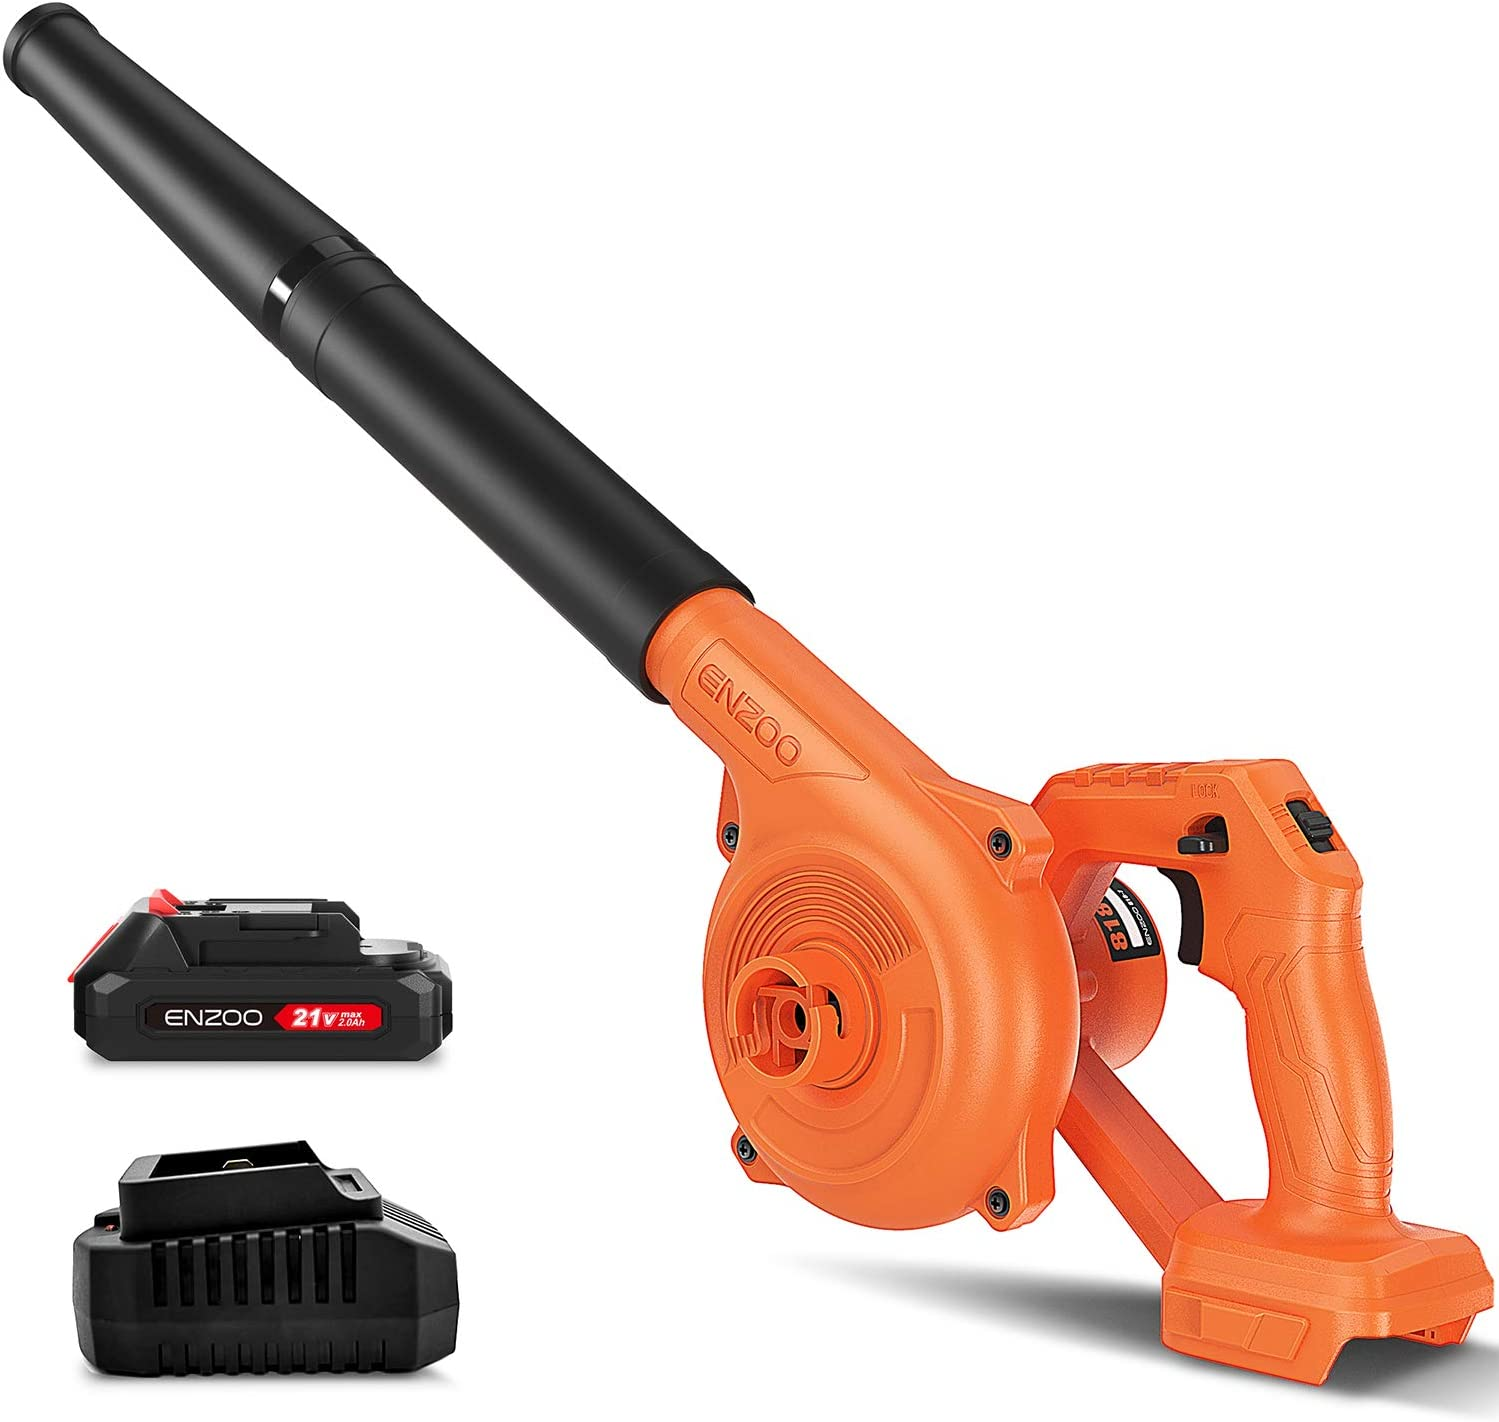 ENZOO Cordless Electric Leaf Blower/Dust Vacuum 2-in-1 Variable Speed MAX 20V Includes 2.0Ah Lithium-Ion Battery and Charger Designed for Light Yard Work and Hard Surface Sweeping (Orange)